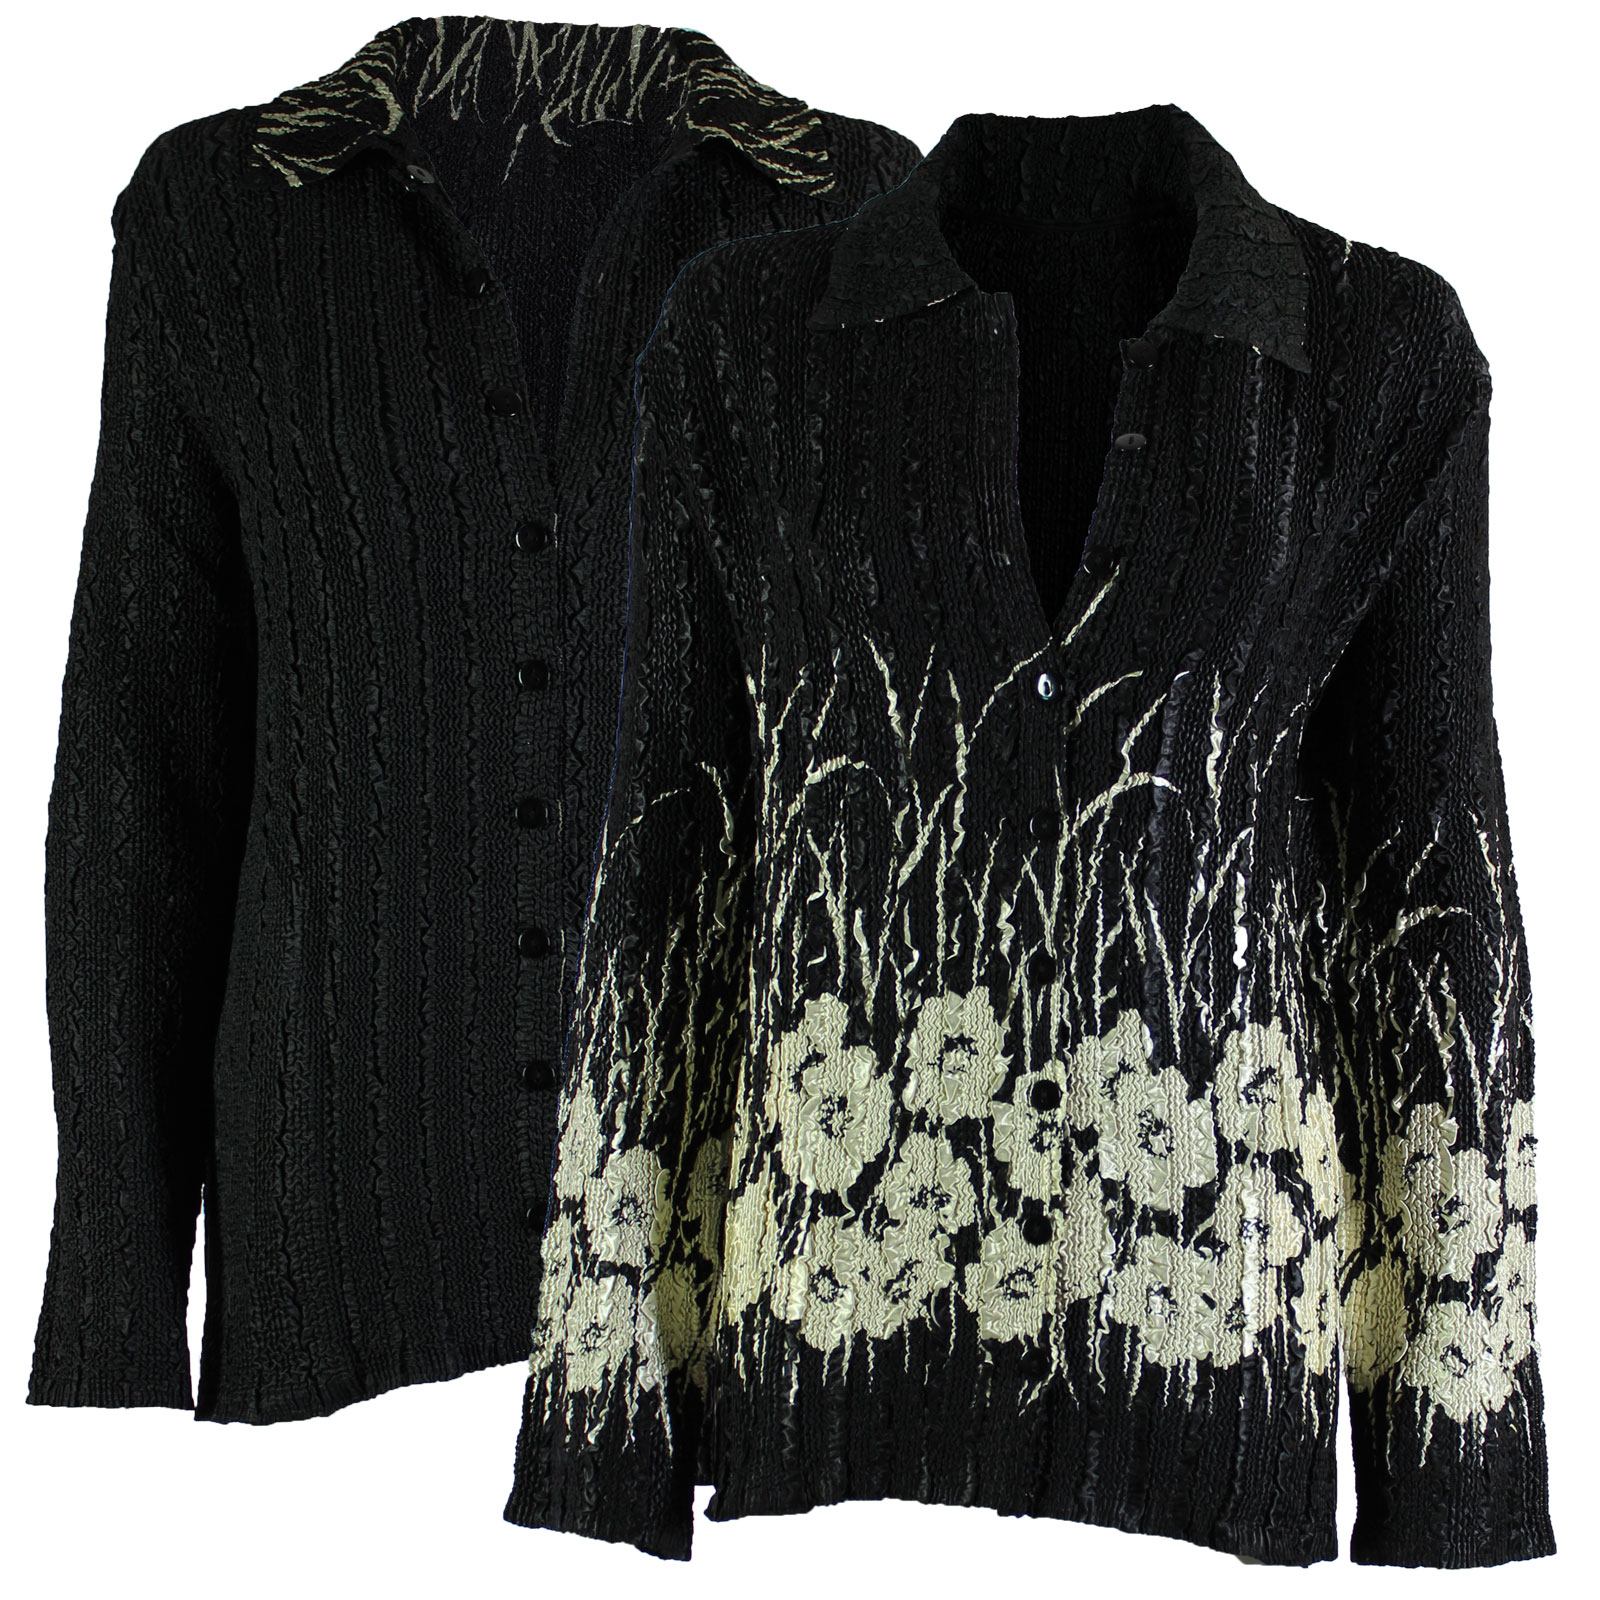 Wholesale Magic Crush - Reversible Jackets Ivory Poppies on Black reverses to Solid Black MB - S-M